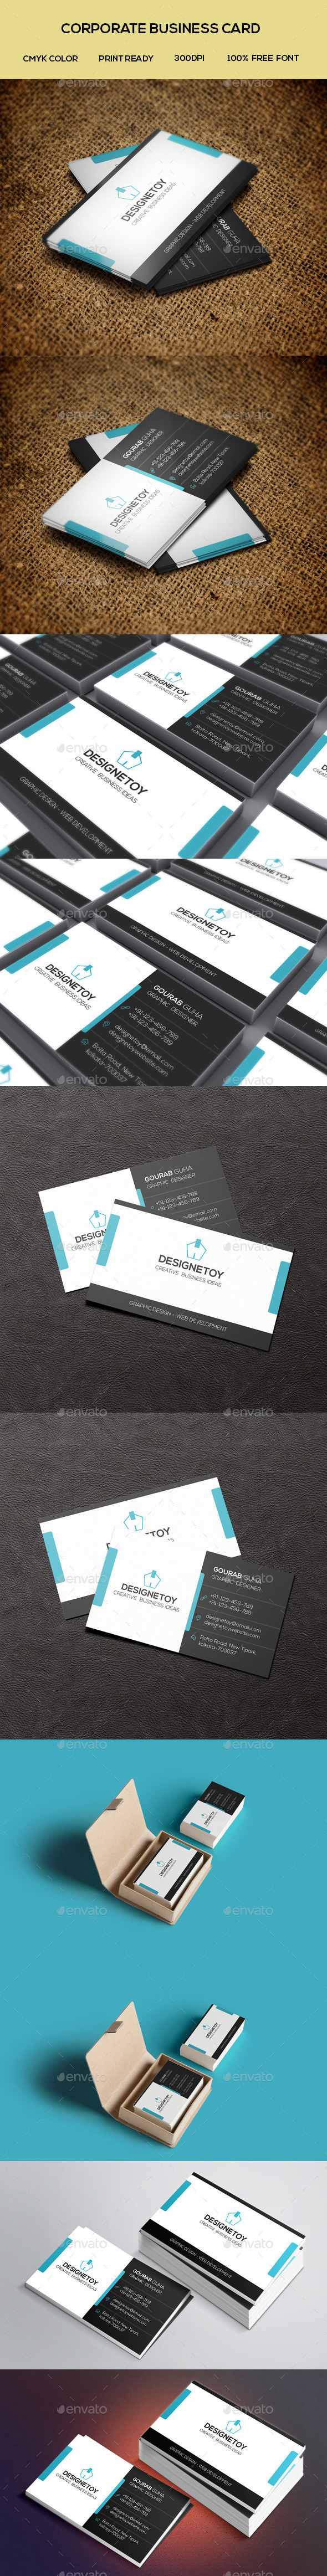 GraphicRiver Creative Corporate Business Card 9177873